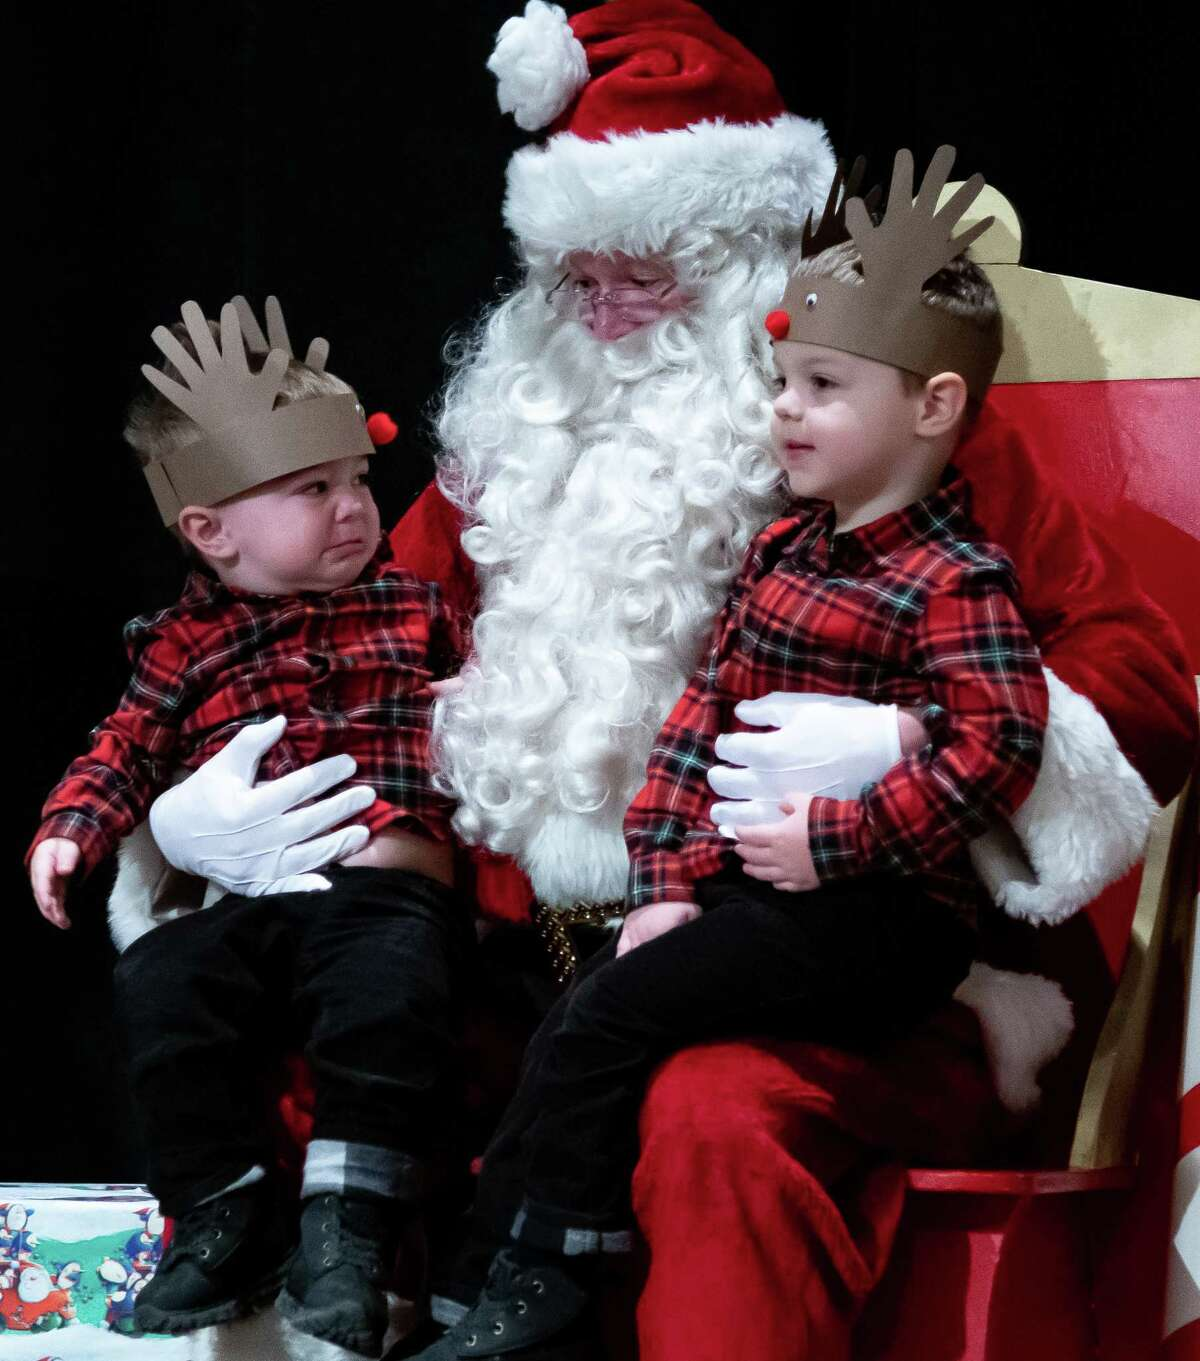 Walker Gac, 2, left, frowns at Santa after being left on his lap with his older bother, Colton, 3, by their mother for a photo at the Saratoga Festival of Trees in the City Center of Saratoga Springs, N.Y. on Dec. 7, 2019. (Jenn March, Special to the Times Union )